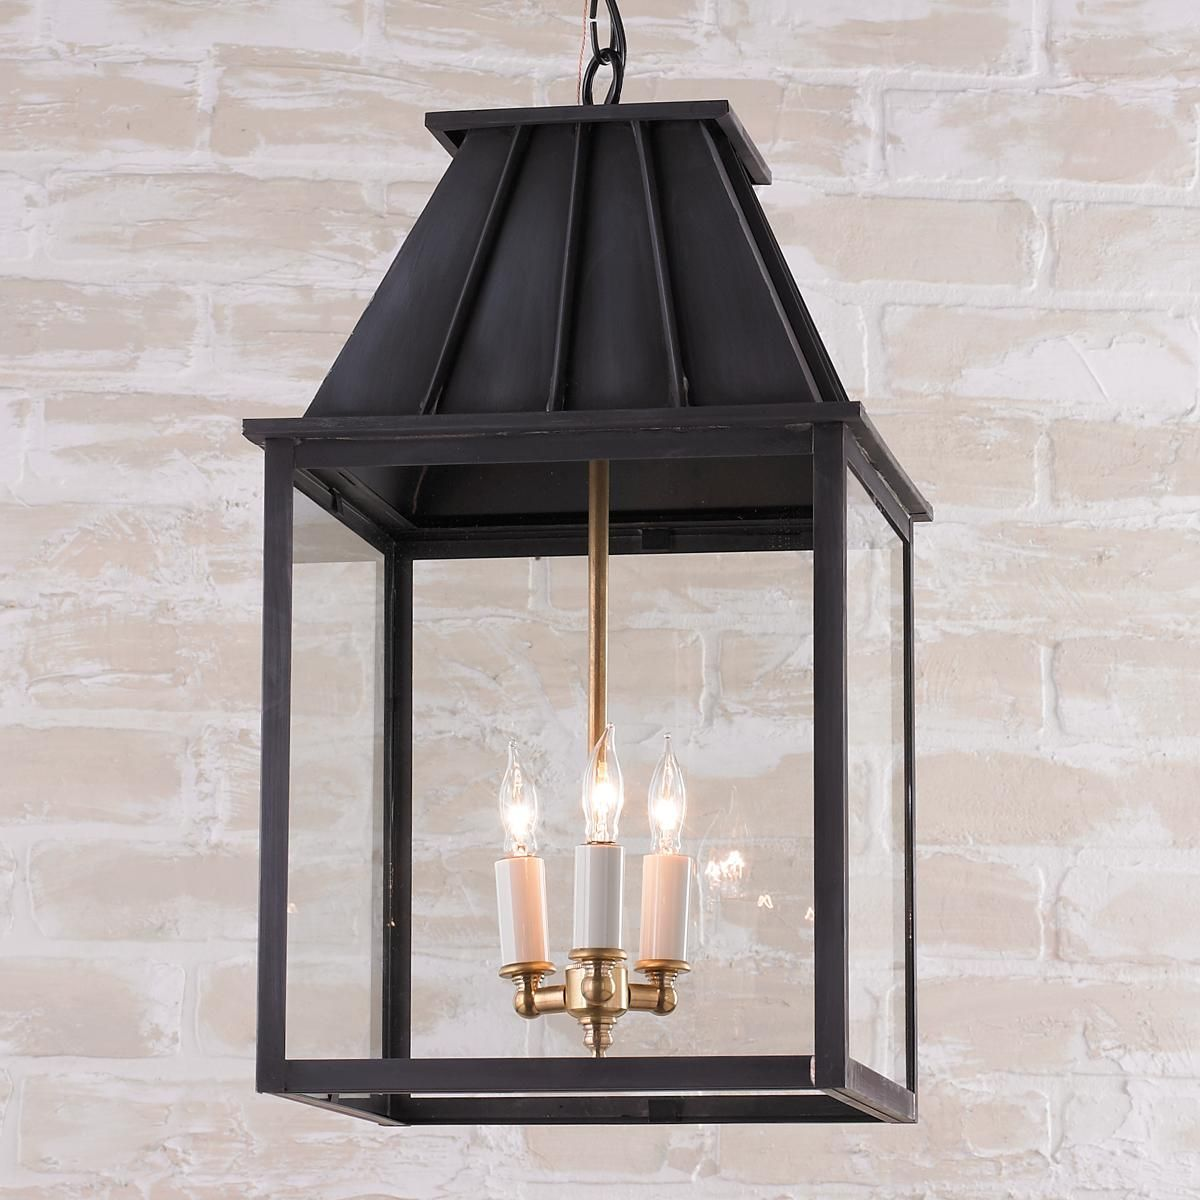 Outdoor Hanging Lanterns Mansard Style Outdoor Hanging Lantern Lighting Flooring